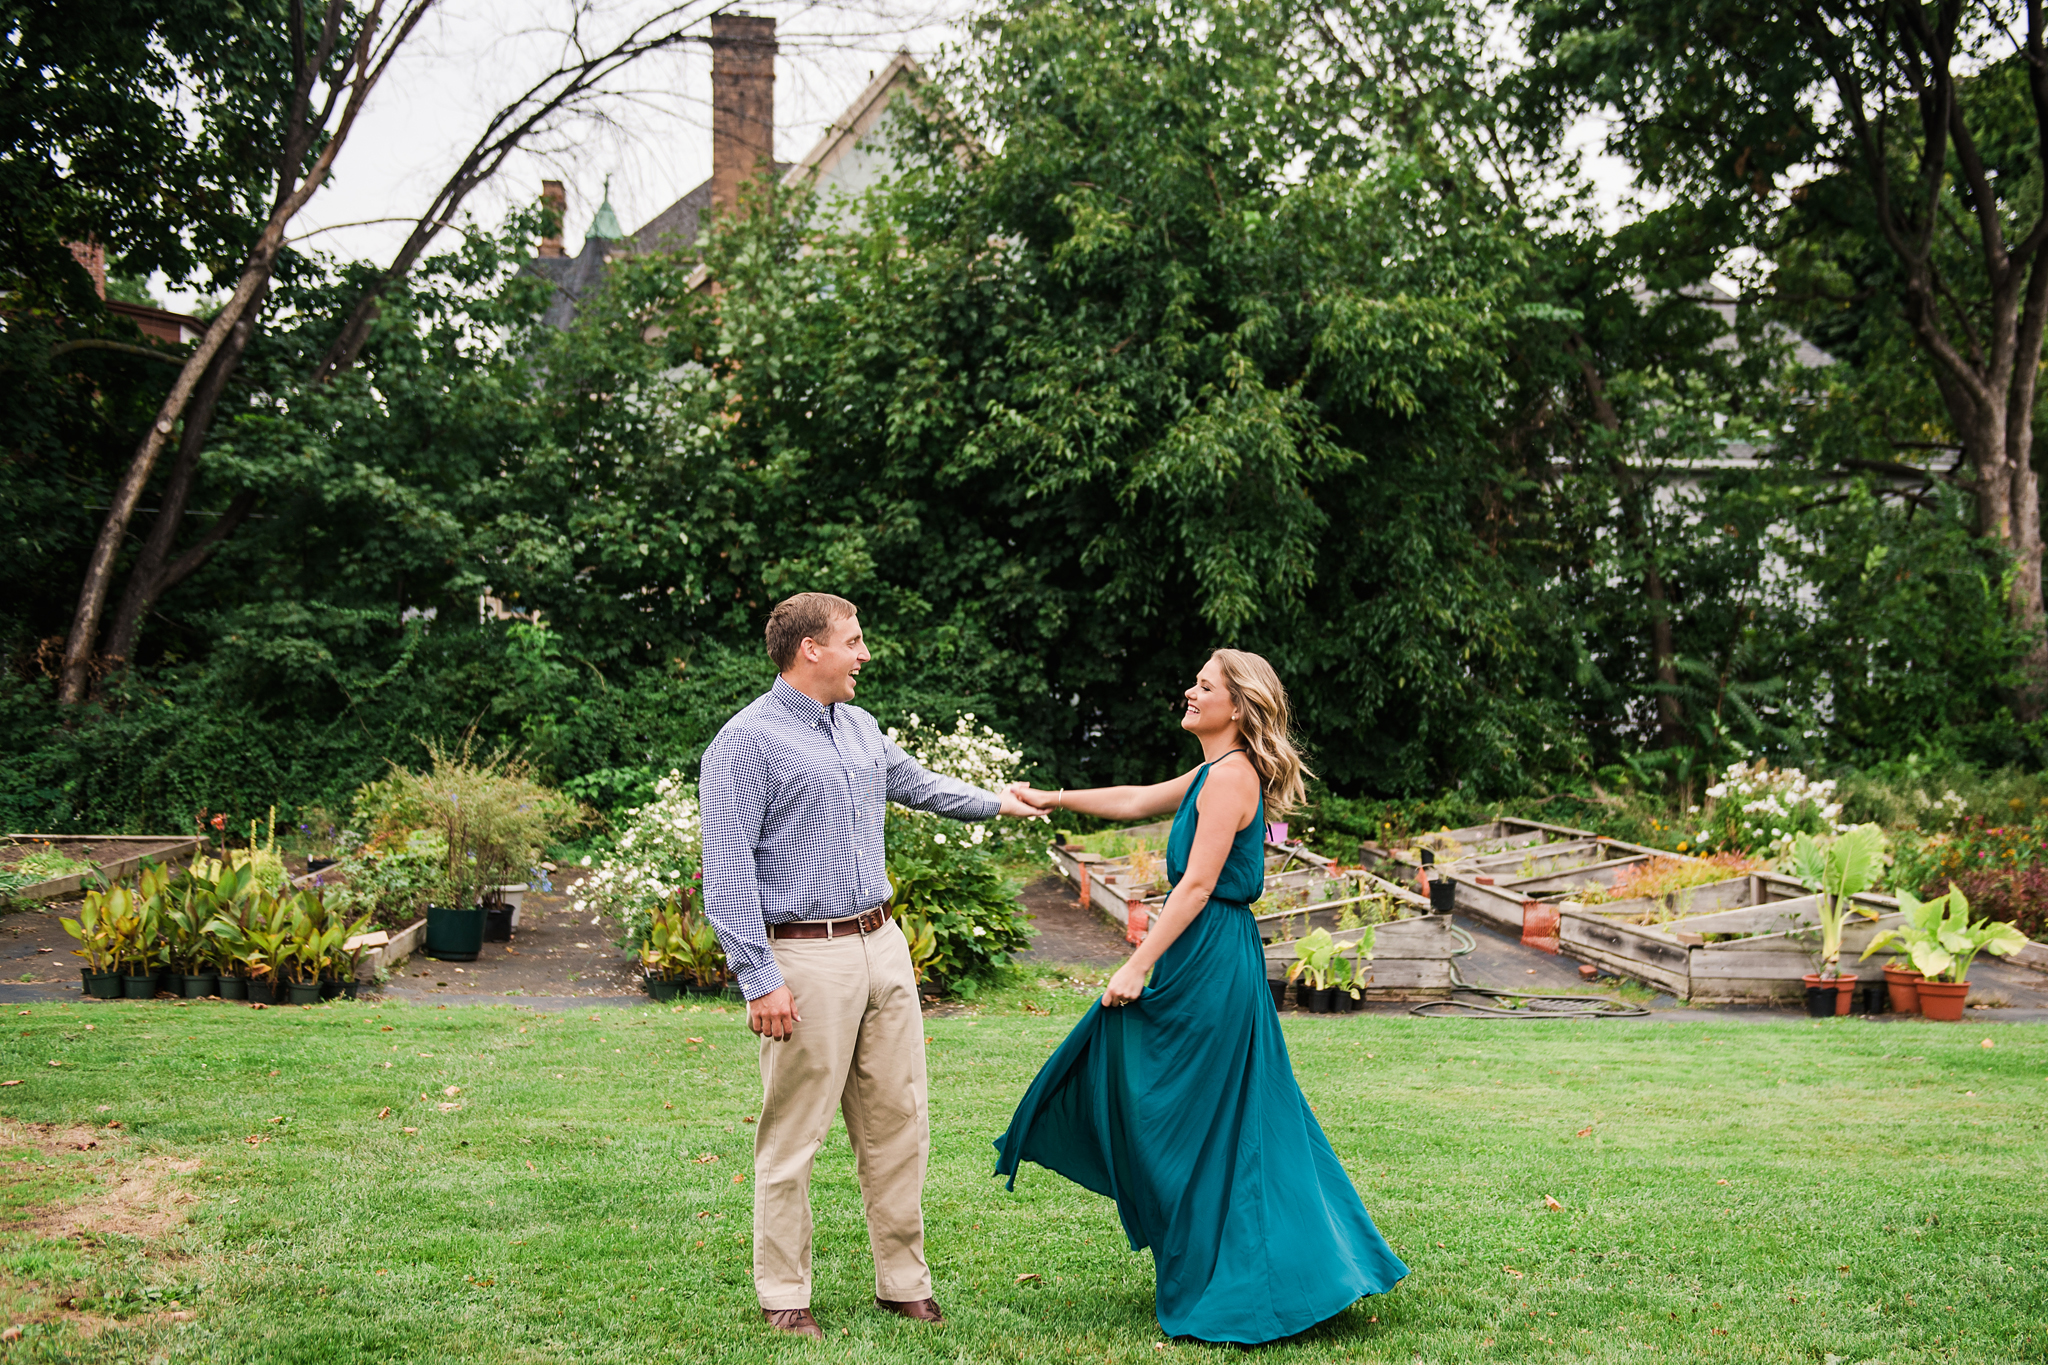 George_Eastman_House_Rochester_Yacht_Club_Rochester_Engagement_Session_JILL_STUDIO_Rochester_NY_Photographer_DSC_8147.jpg